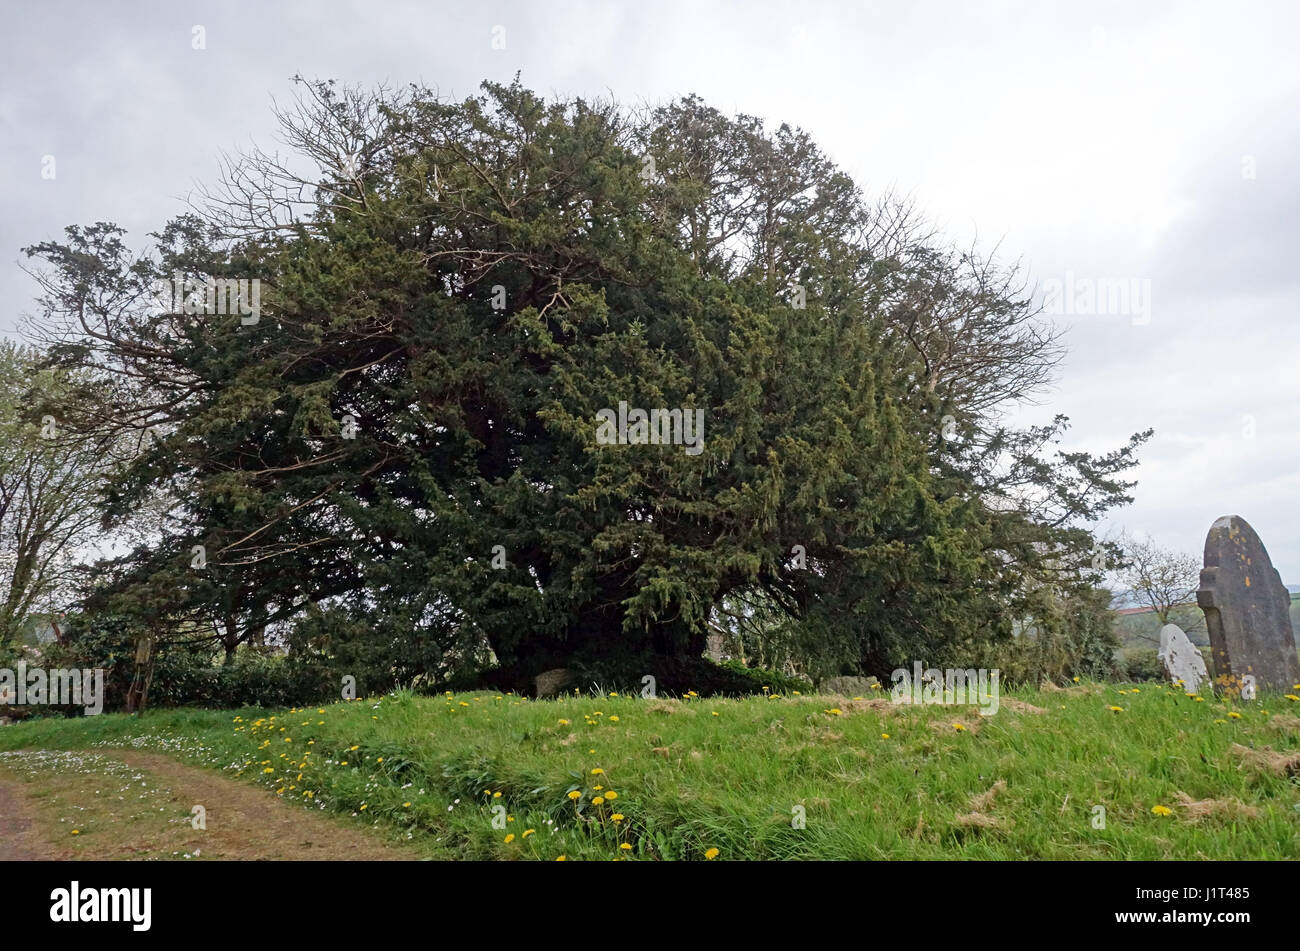 The Ashbrittle Yew in Ashbrittle, Somerset is thought to be over 3,000 years old - Stock Image